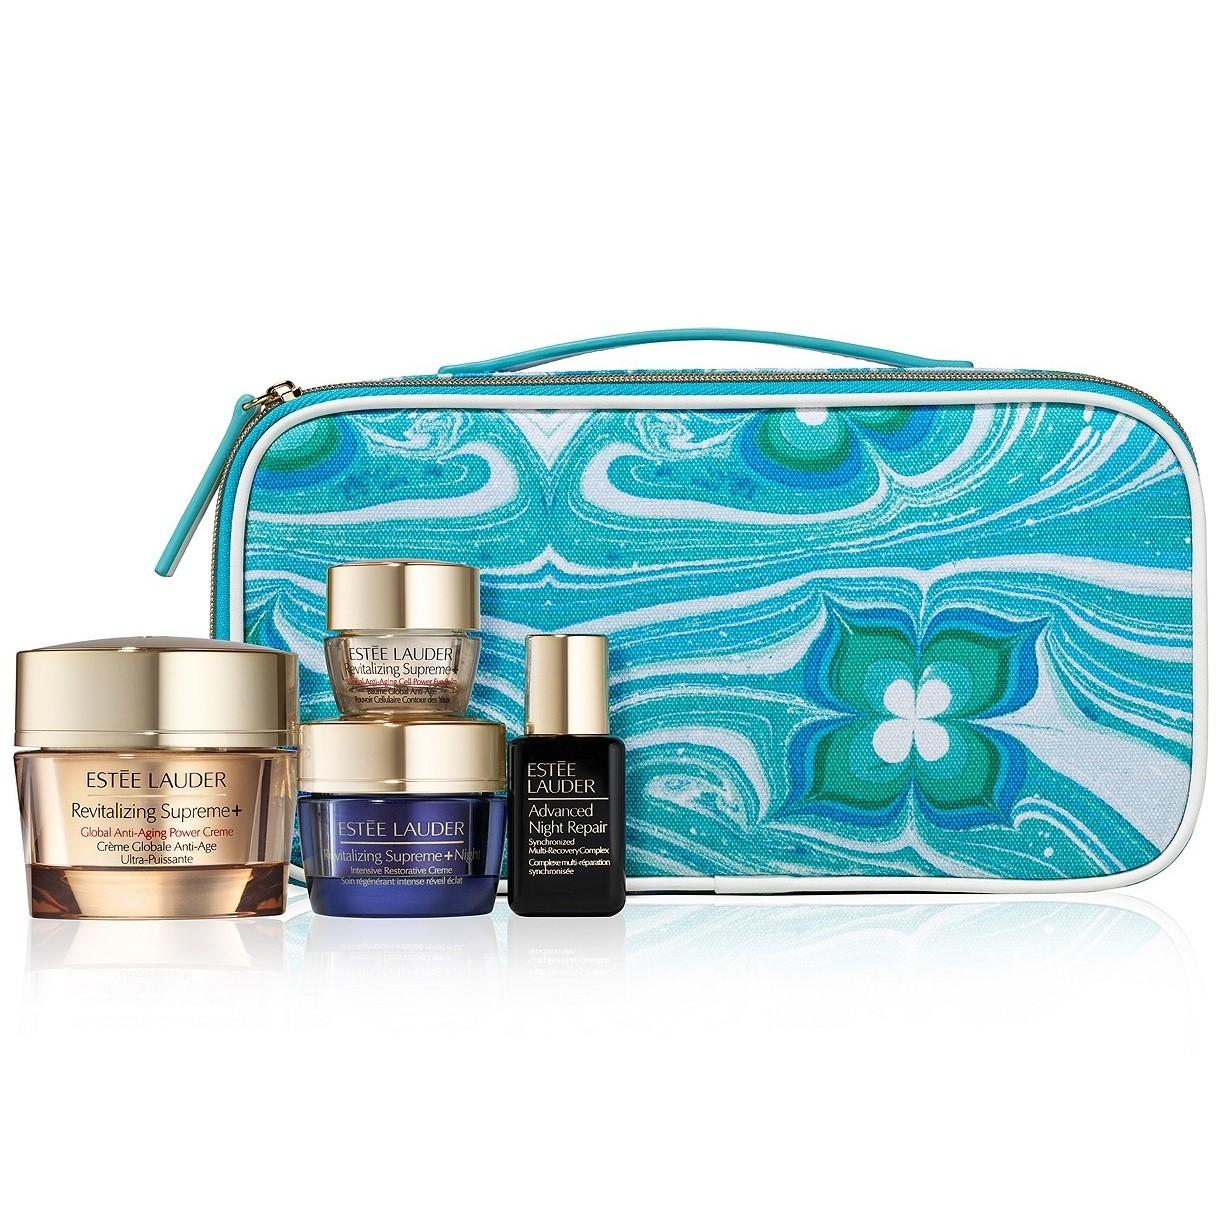 Estee Lauder Revitalizing Supreme set (value $188)